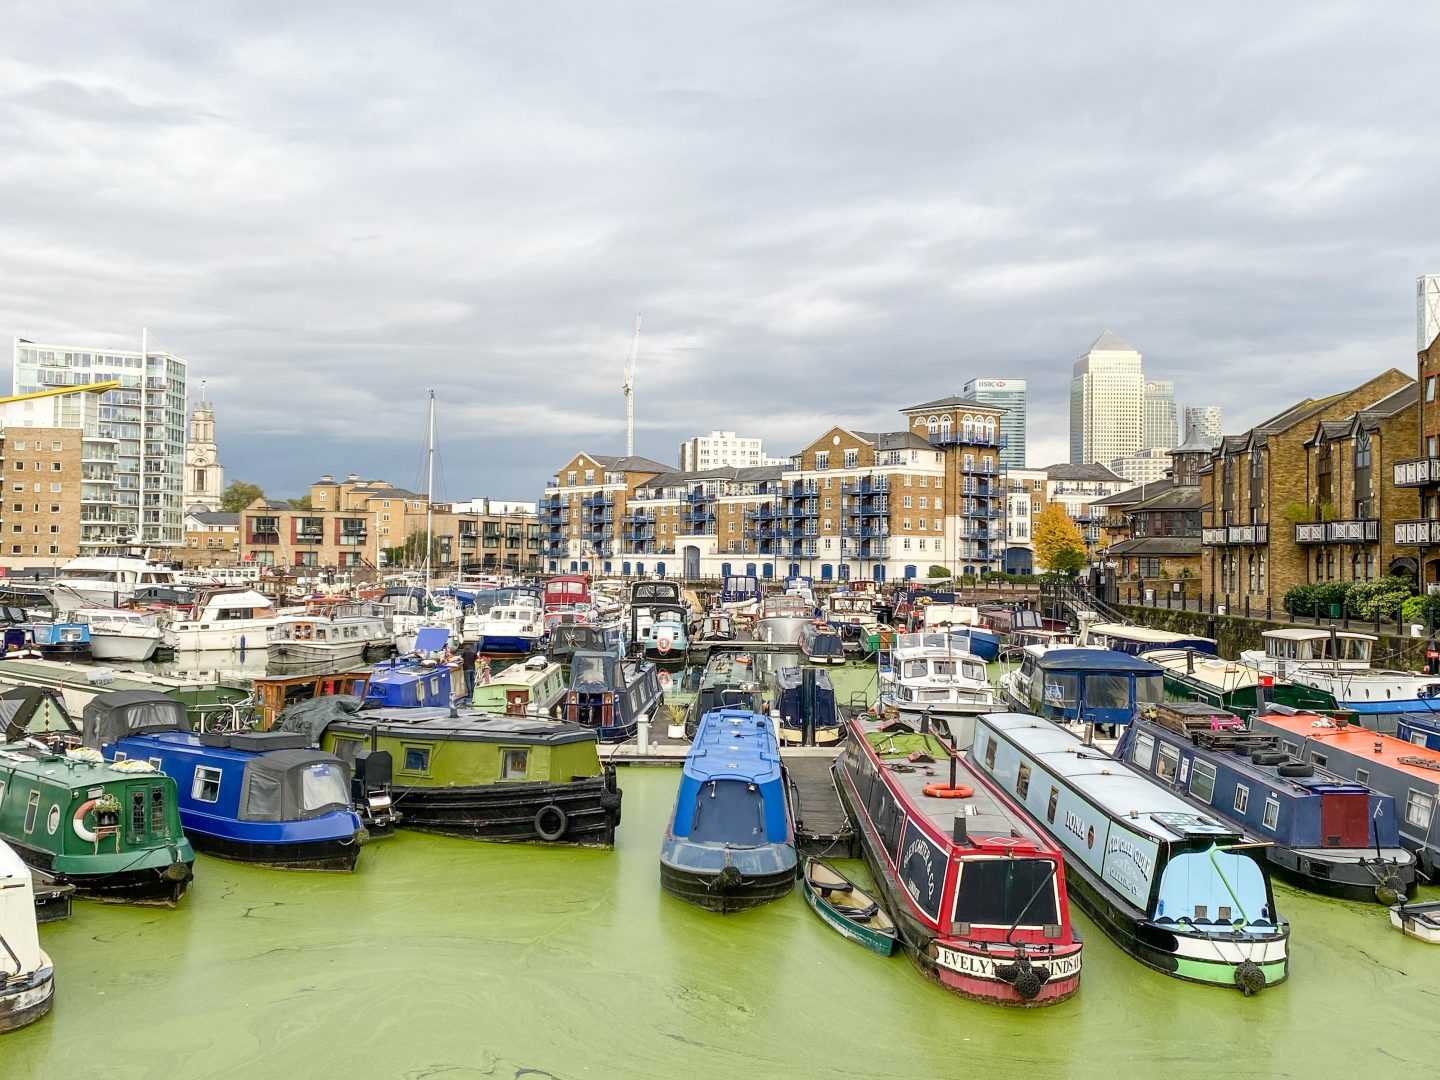 Guide to a walk in Limehouse